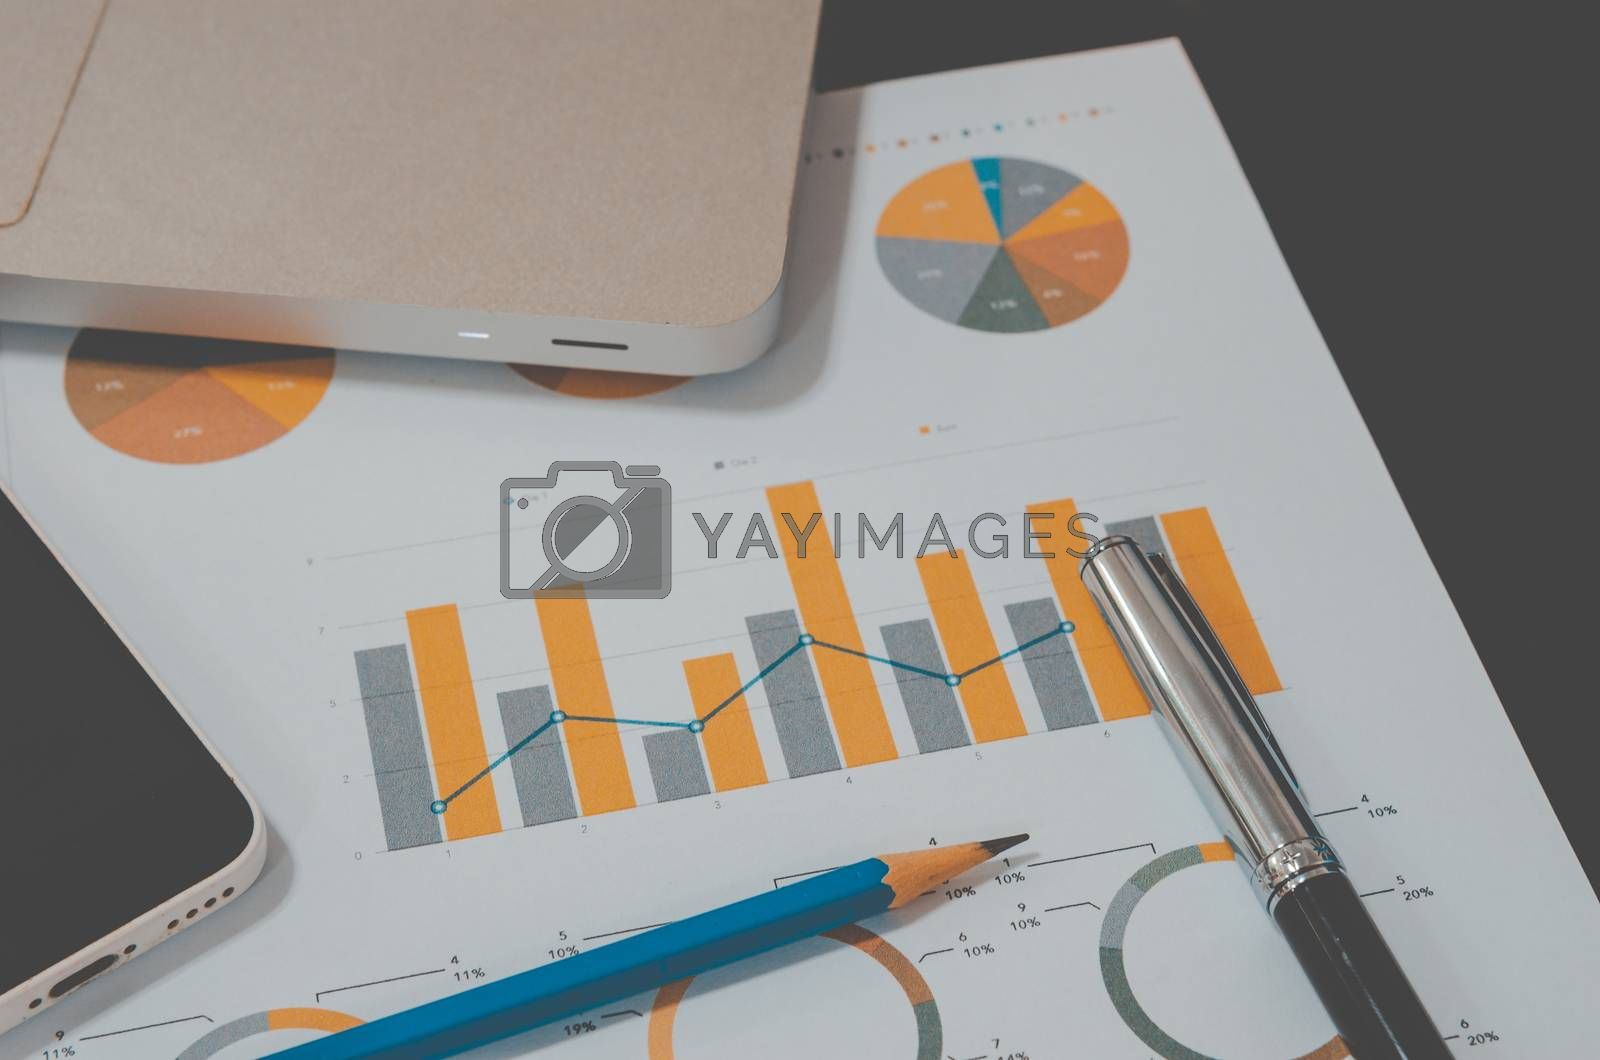 business documents graph financial and computer laptop on table with pencil and diagram. Vintage tone